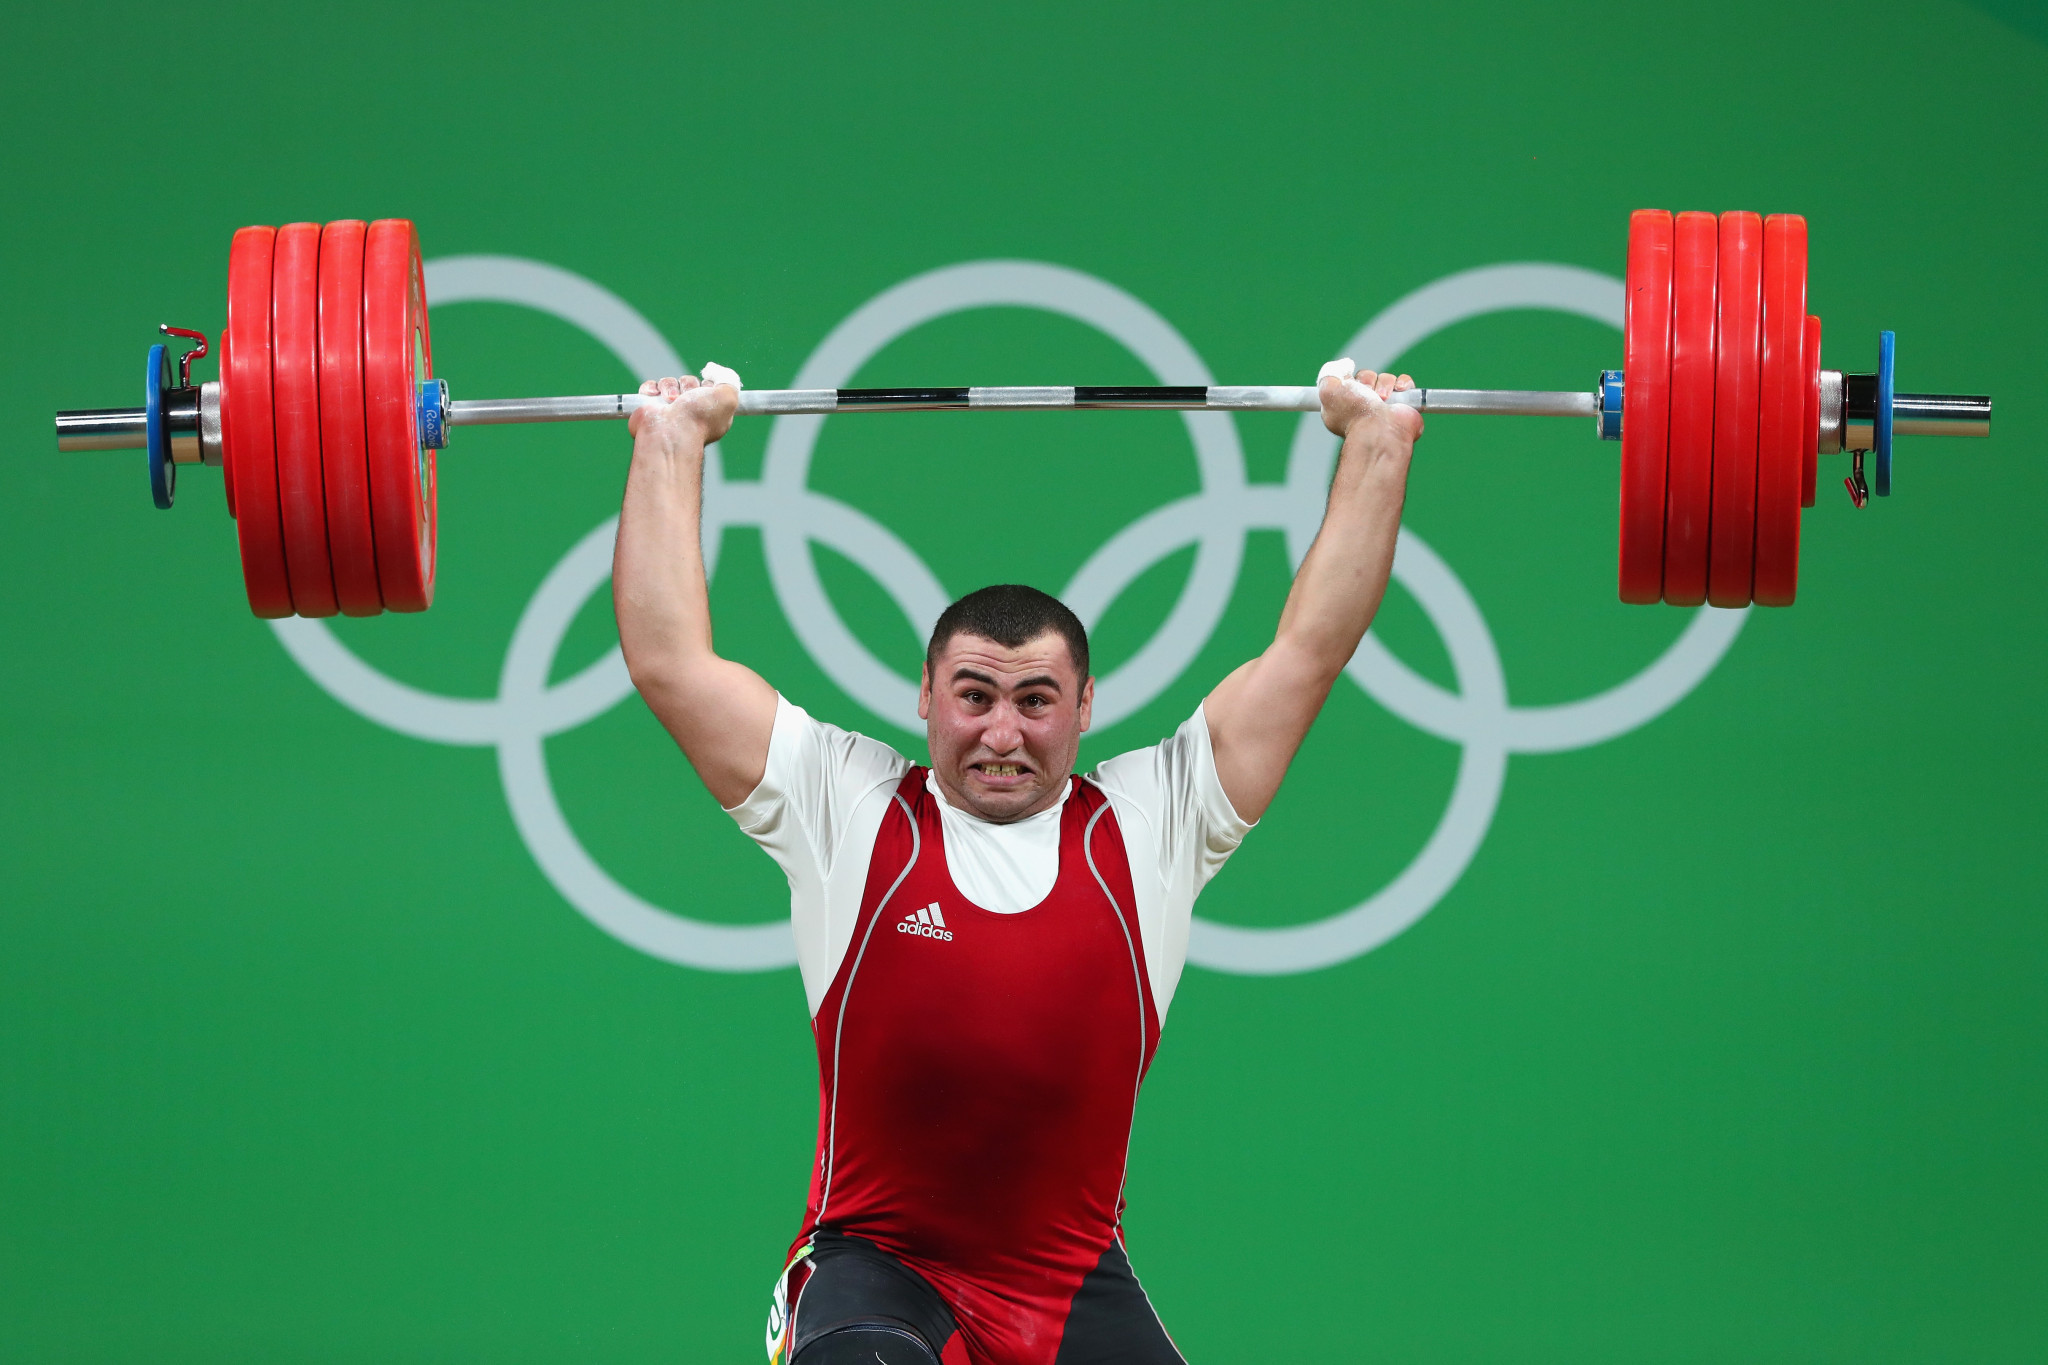 Simon Martirosyan in action at Rio 2016 ©Getty Images